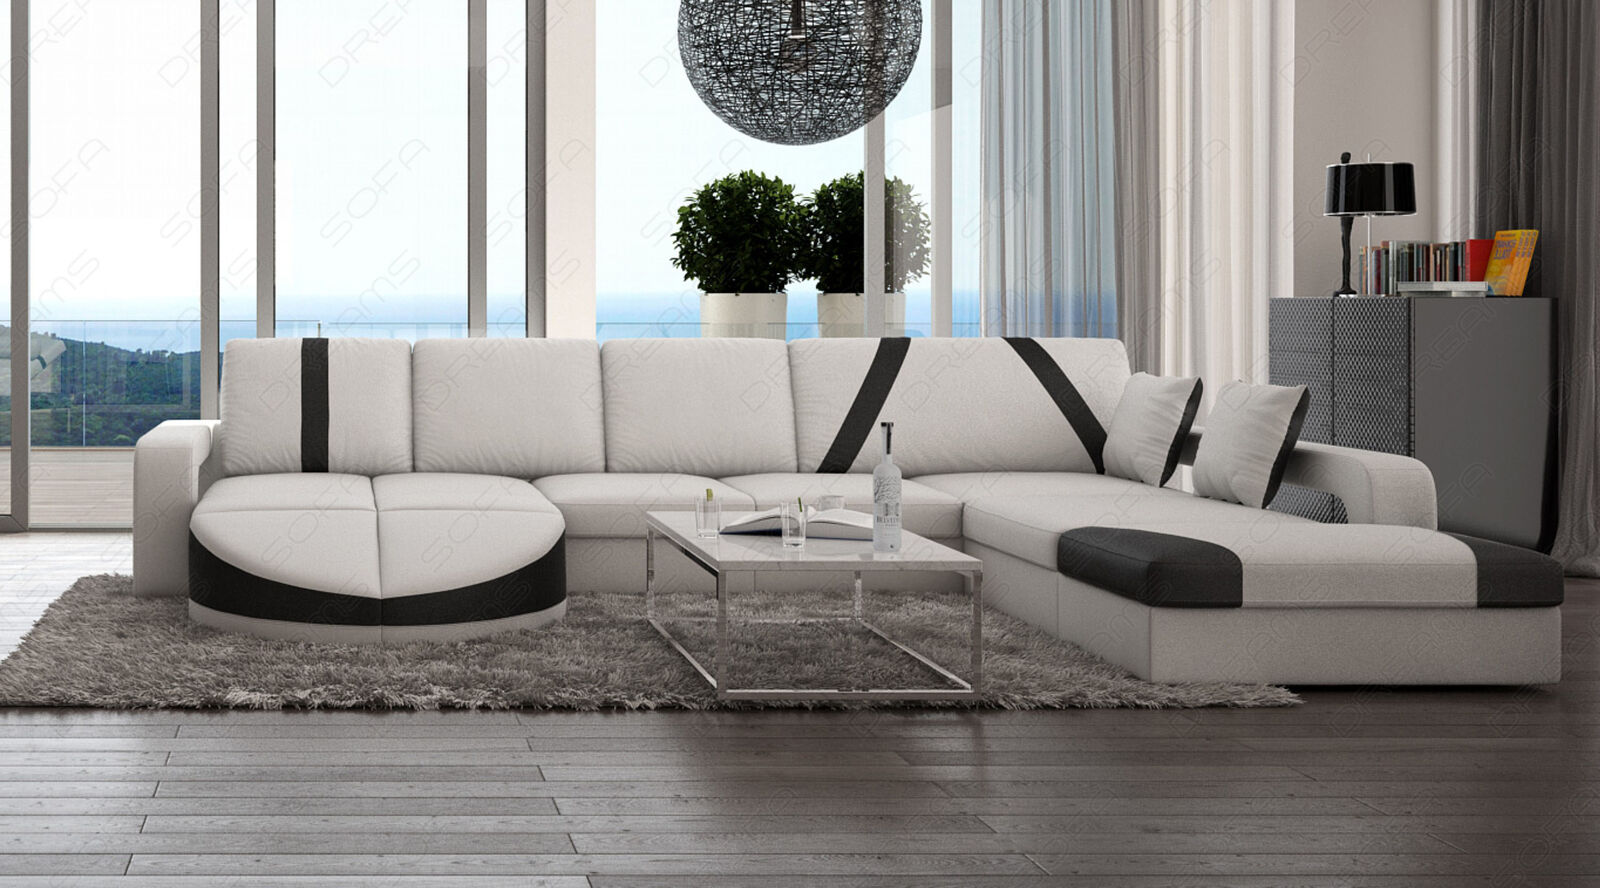 luxus designer couch ledersofa wohnlandschaft florenz u form eckcouch sofa eur. Black Bedroom Furniture Sets. Home Design Ideas